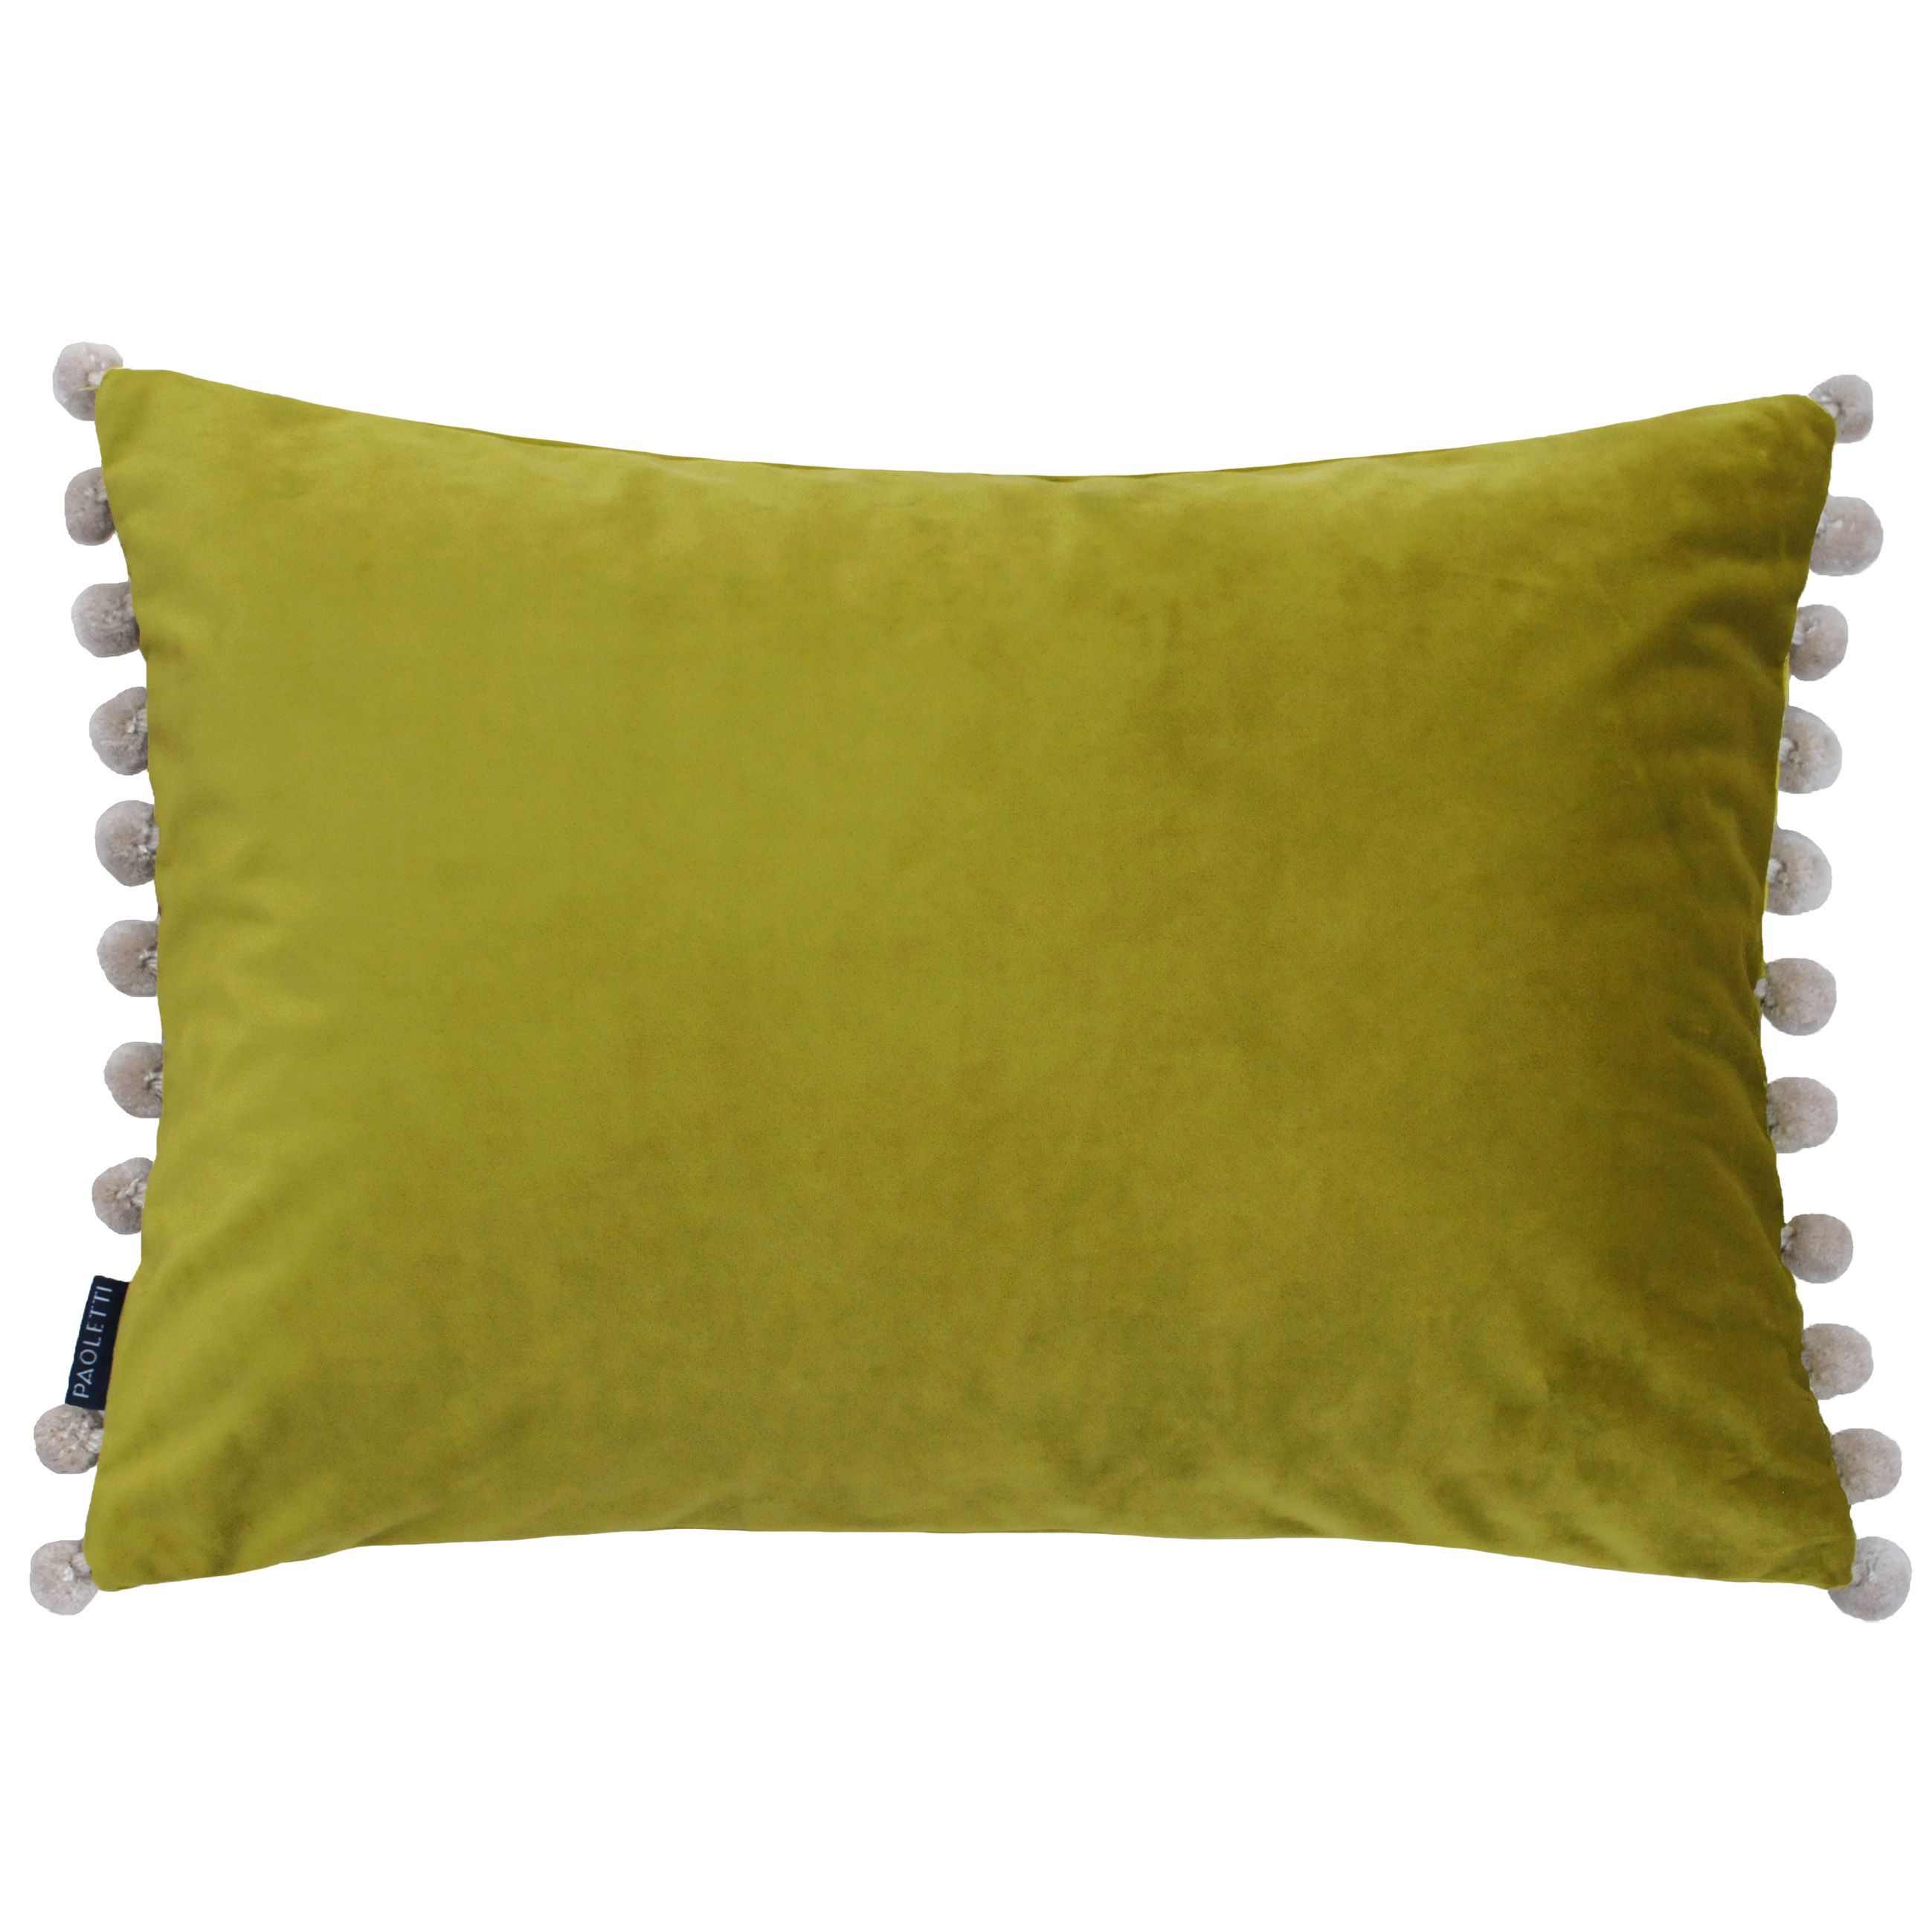 Fiesta Poly Cushion 35X50 Bam/Nat